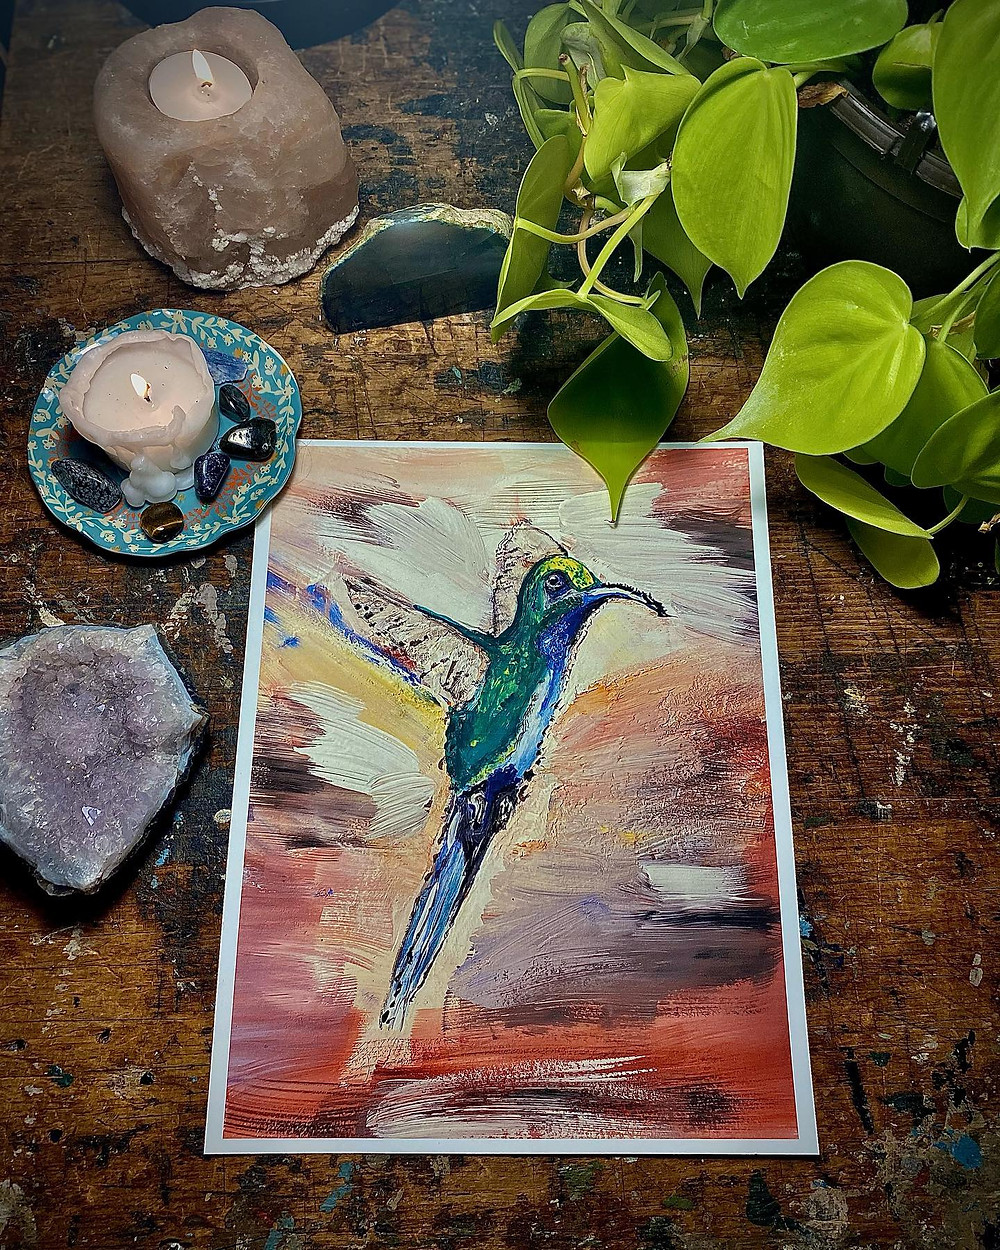 Humming Bird Acrylic Painting Surrounded By Candles and Plants